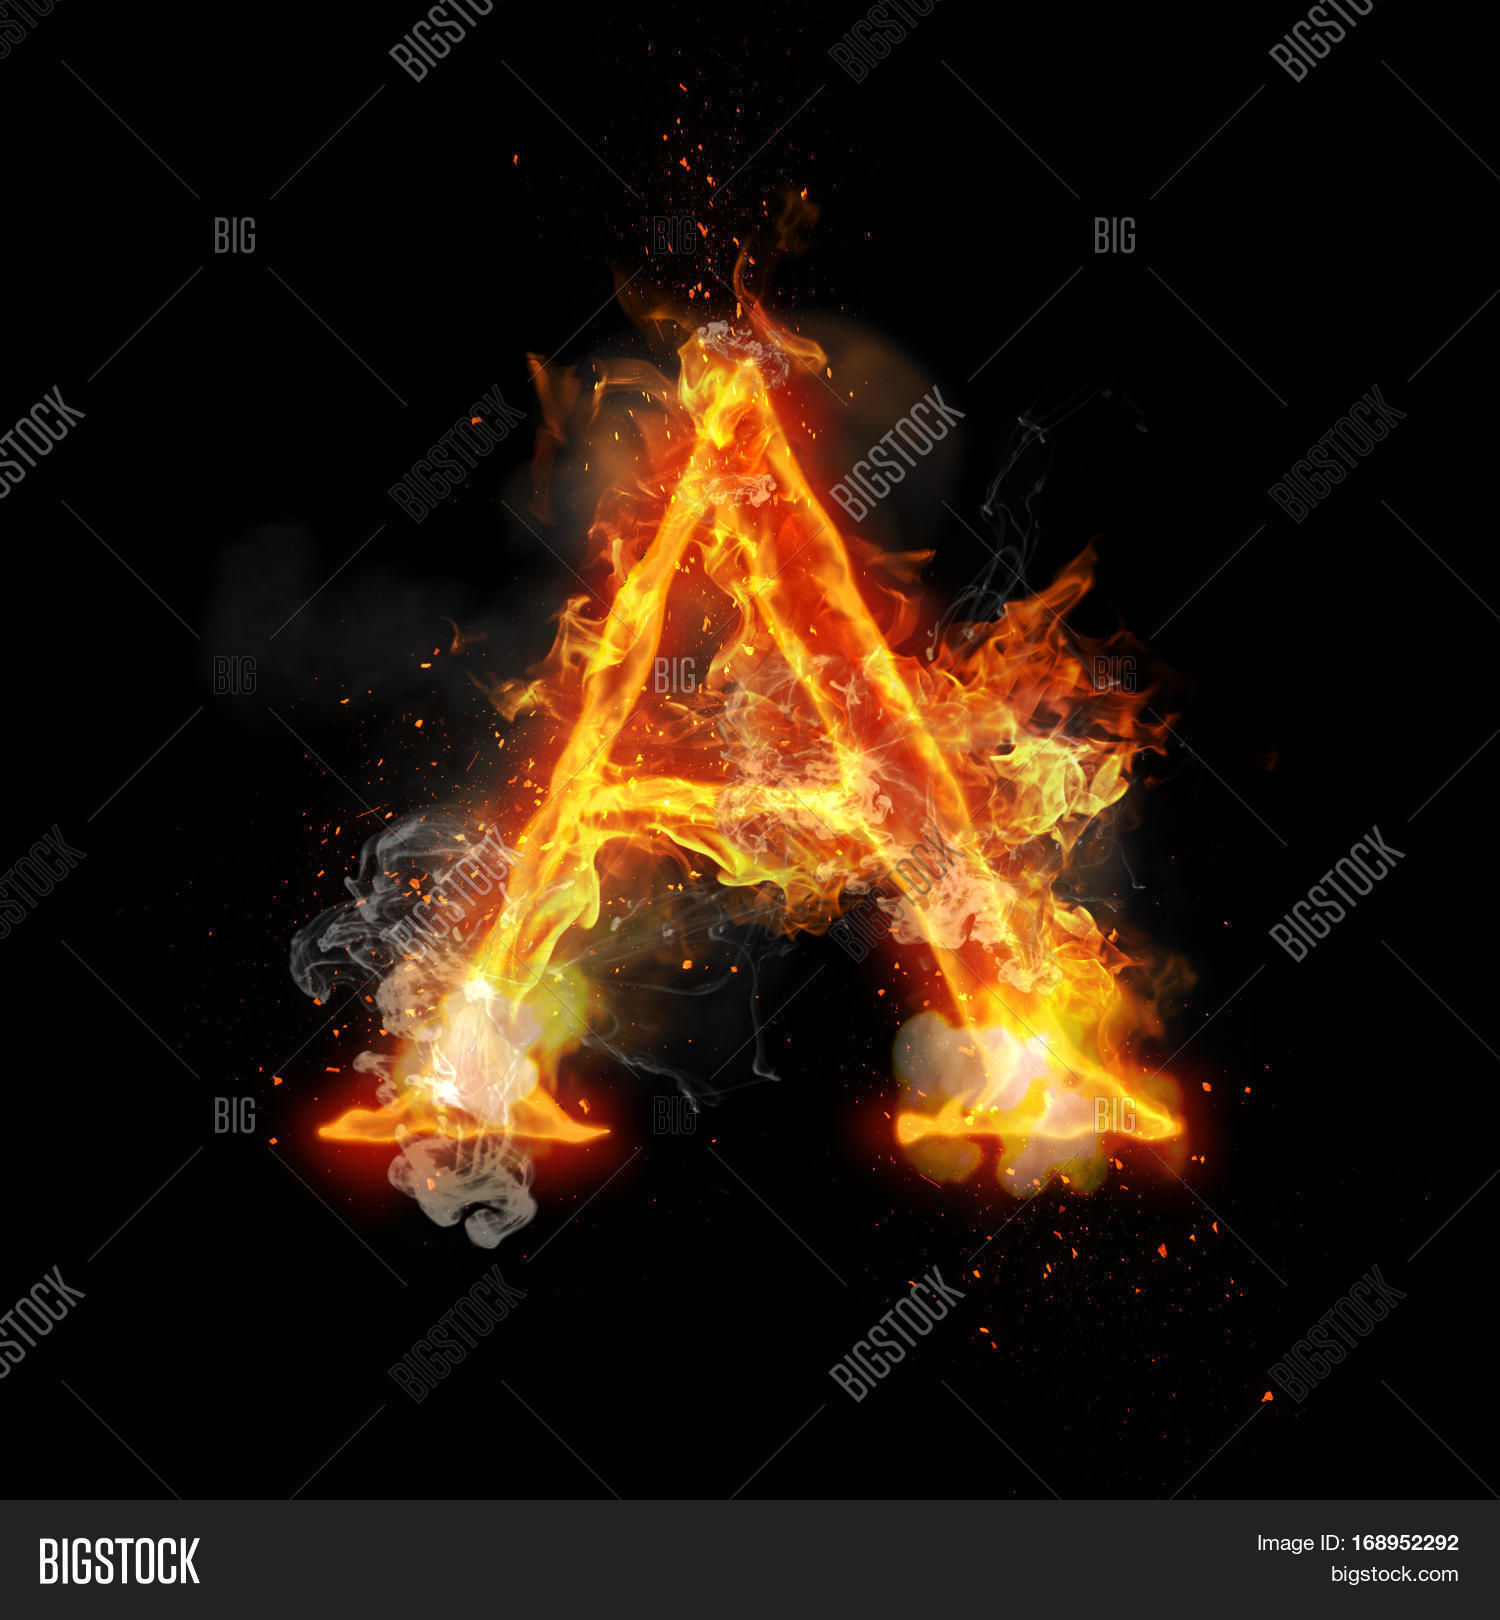 Fire Letter Burning Image & Photo (Free Trial) | Bigstock